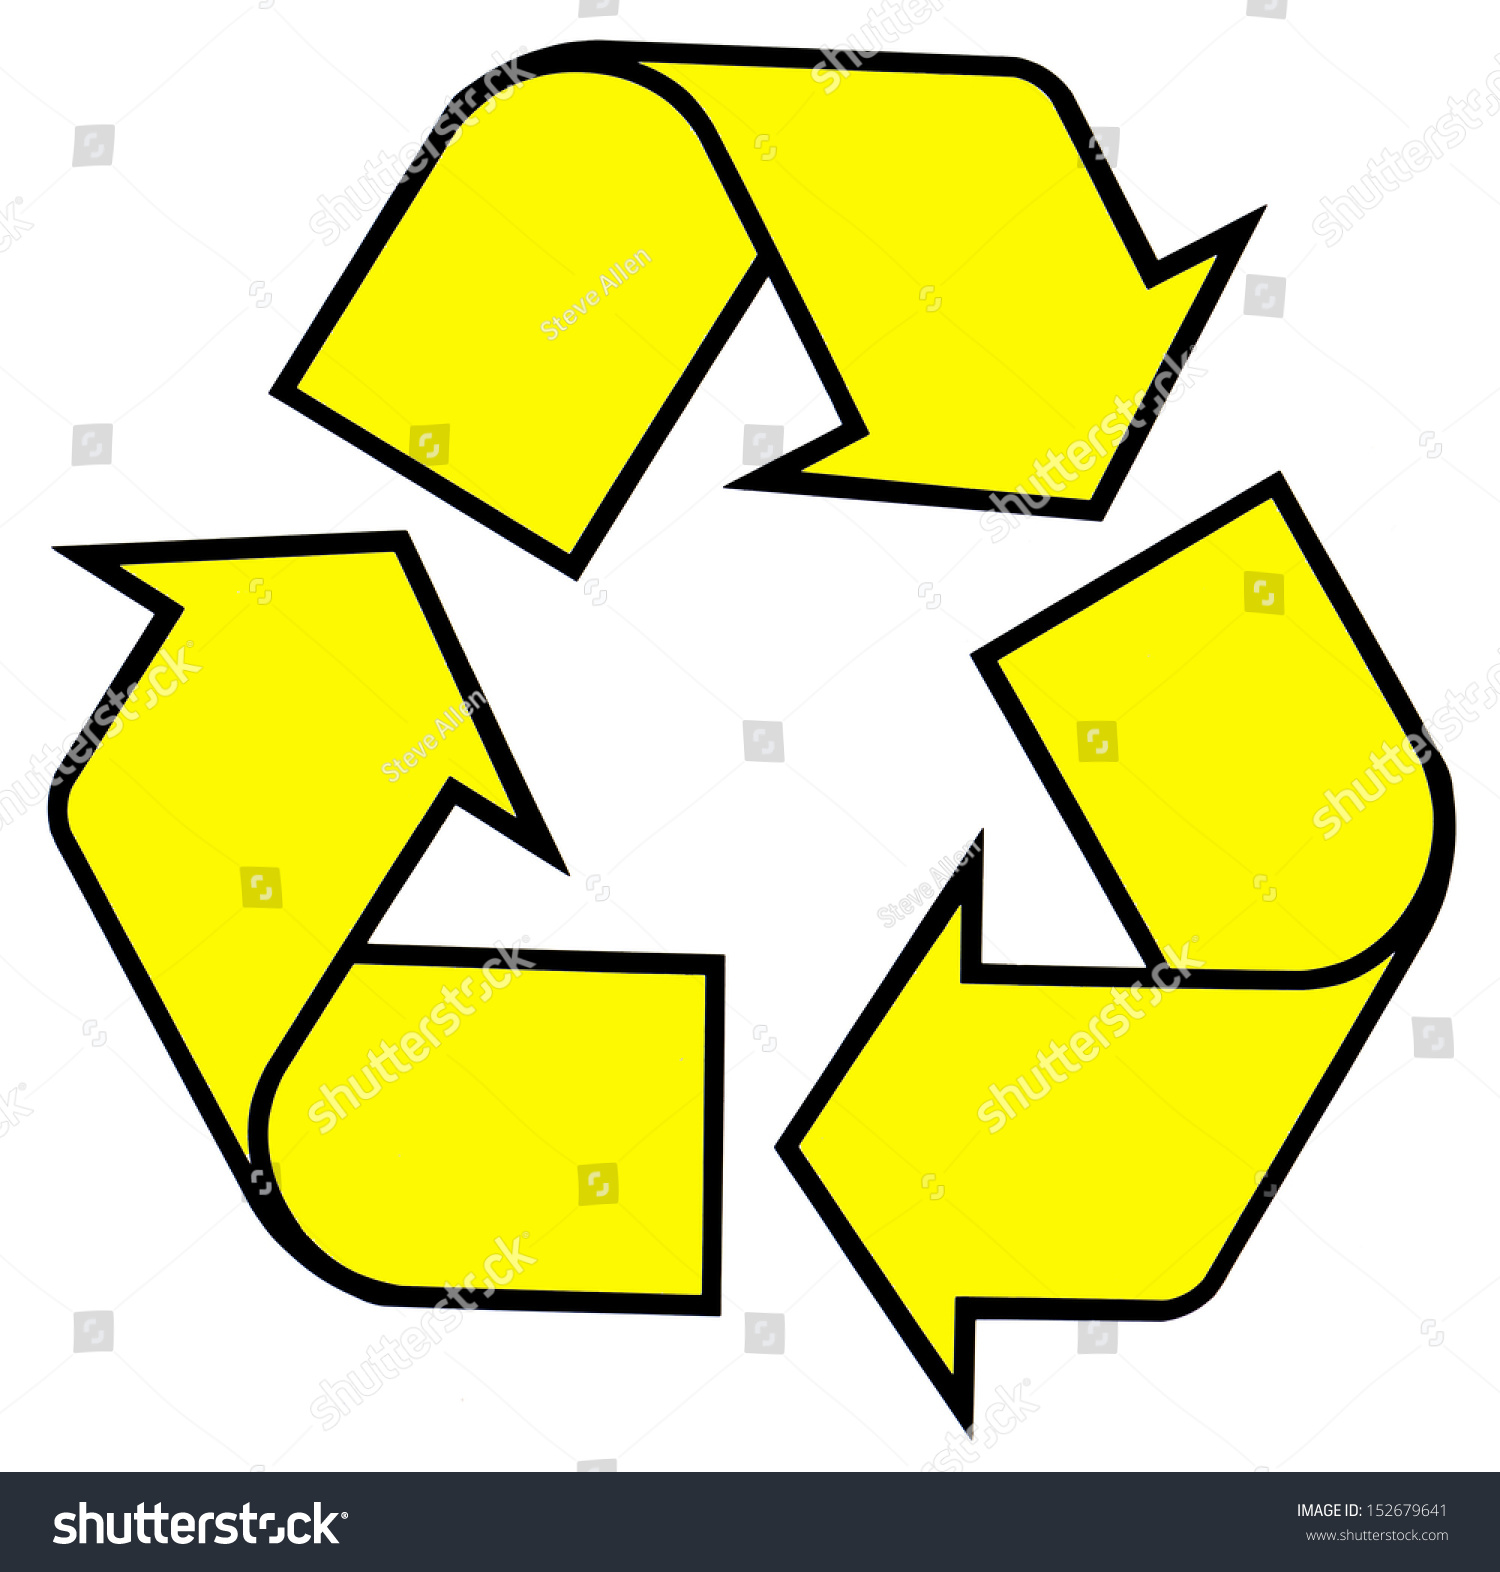 Recycling Symbol Isolated Cutout Stock Illustration 152679641